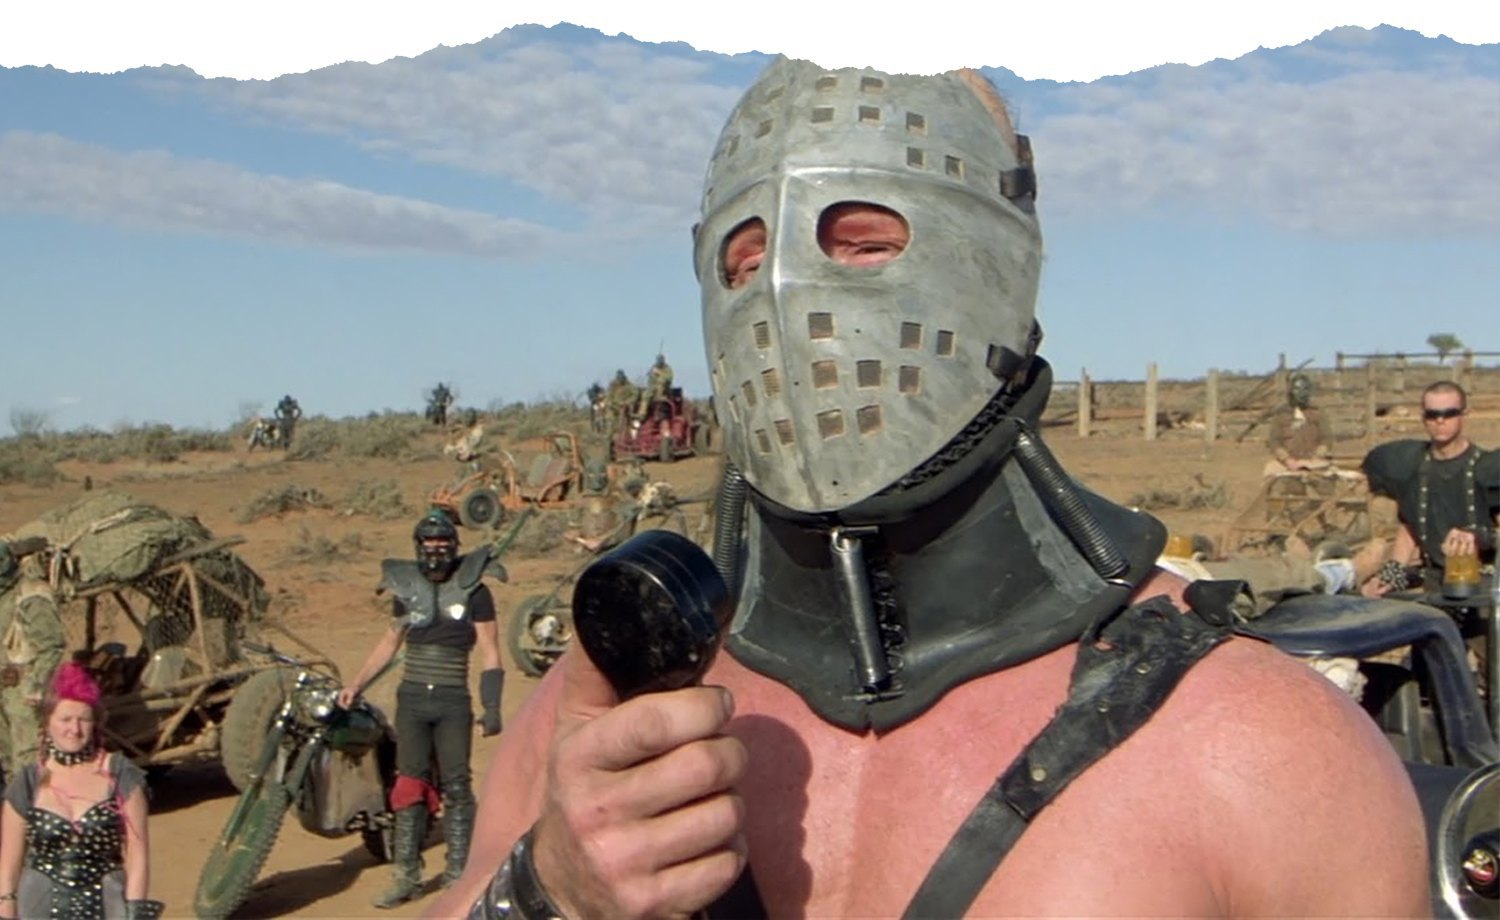 From zombies to Mad Max: the real fears behind apocalyptic movies. Image 9.